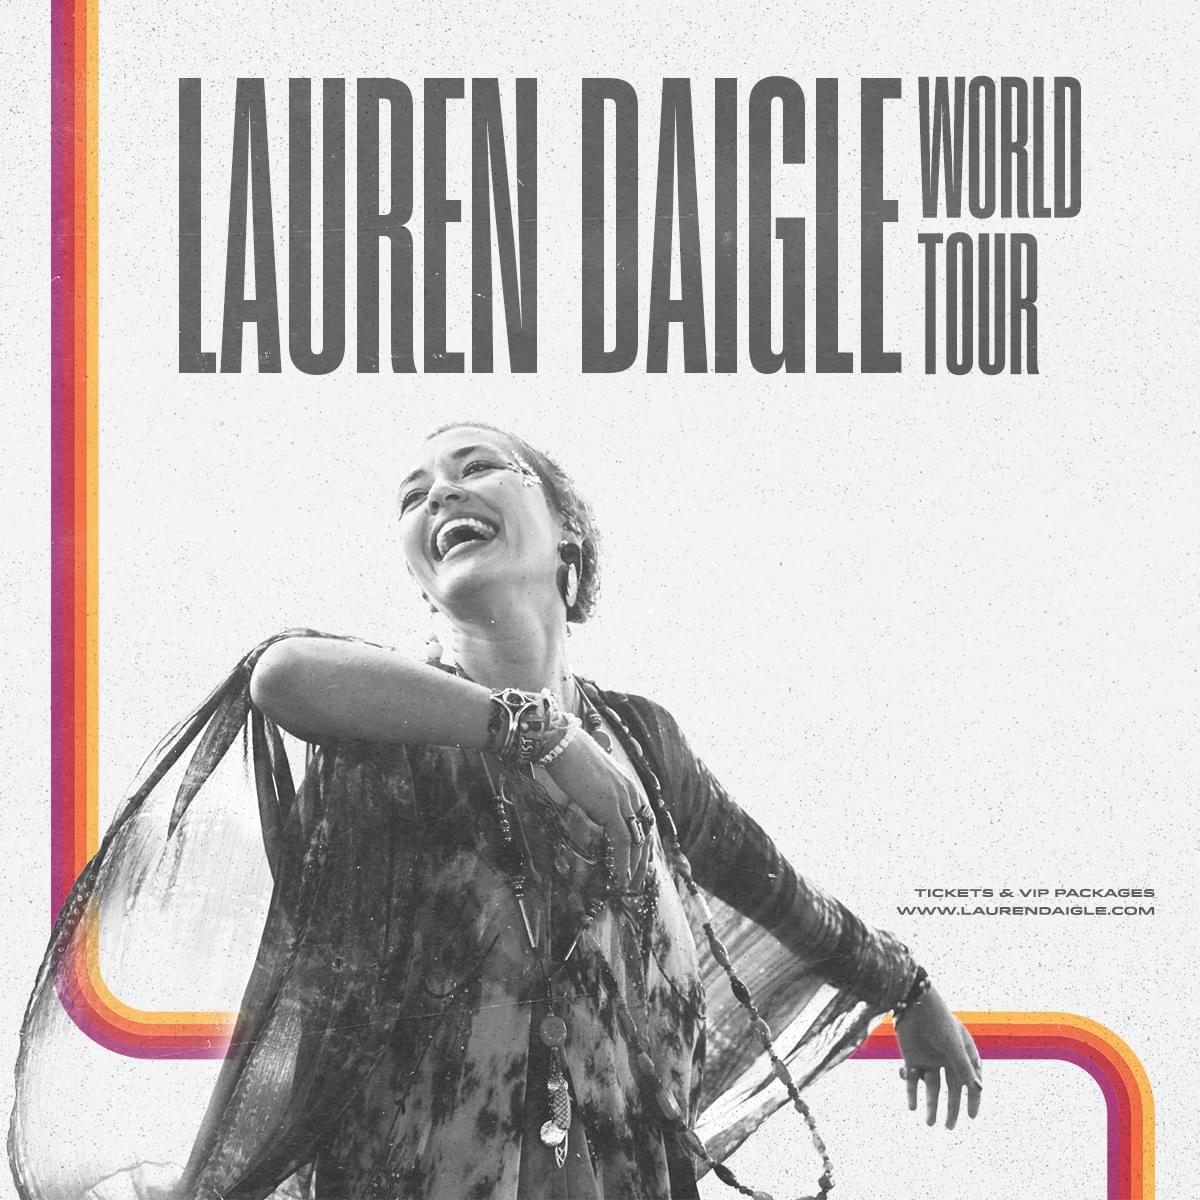 May 7 – Lauren Daigle